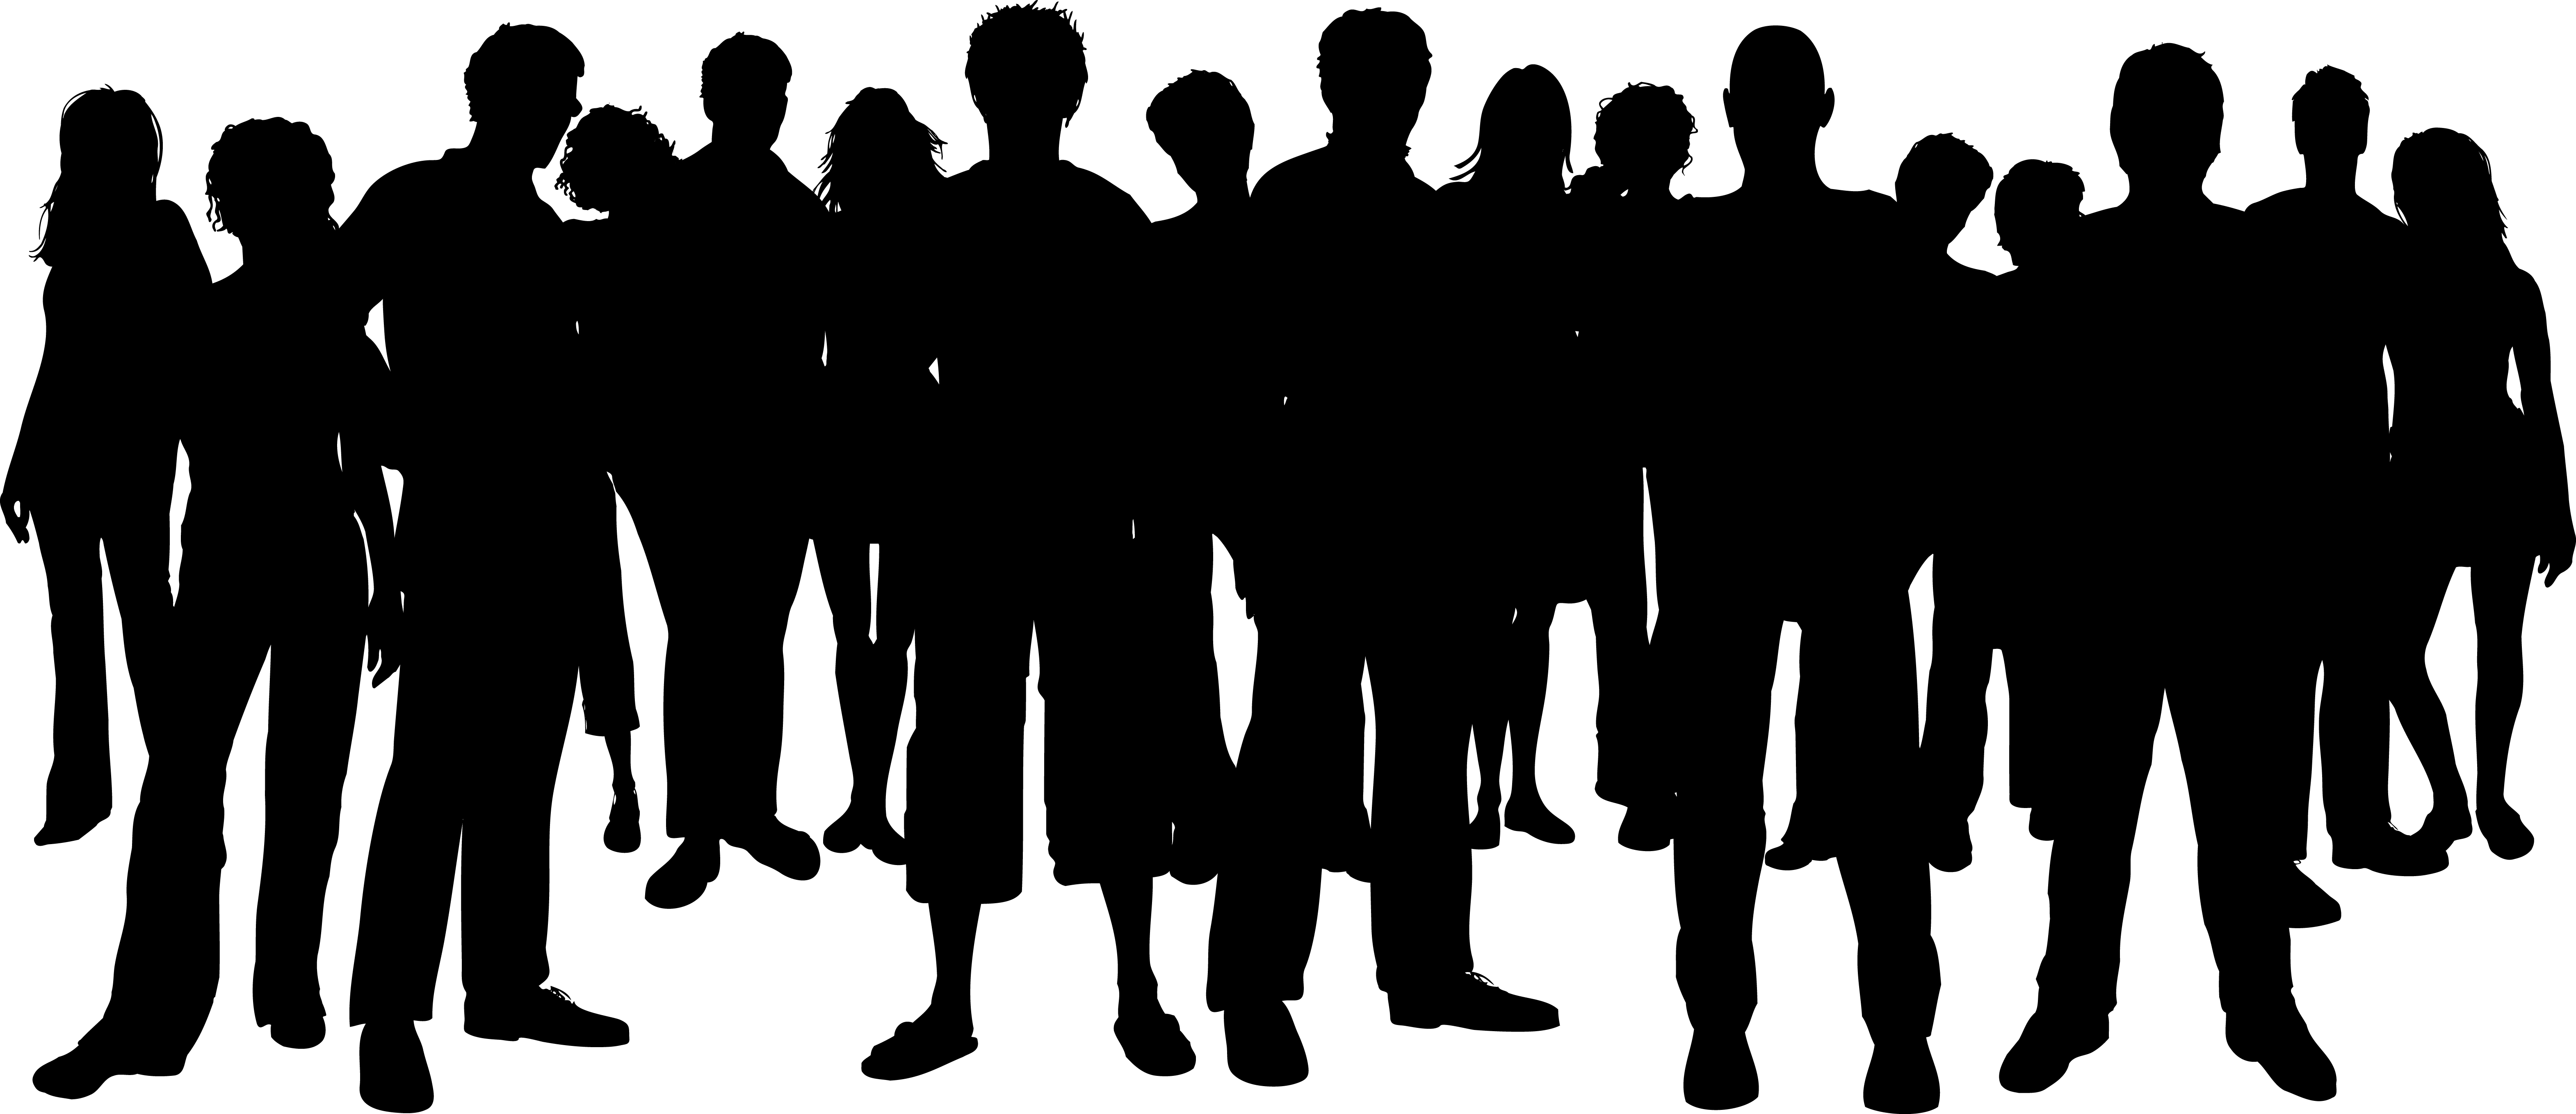 Crowd clipart. Best of people collection